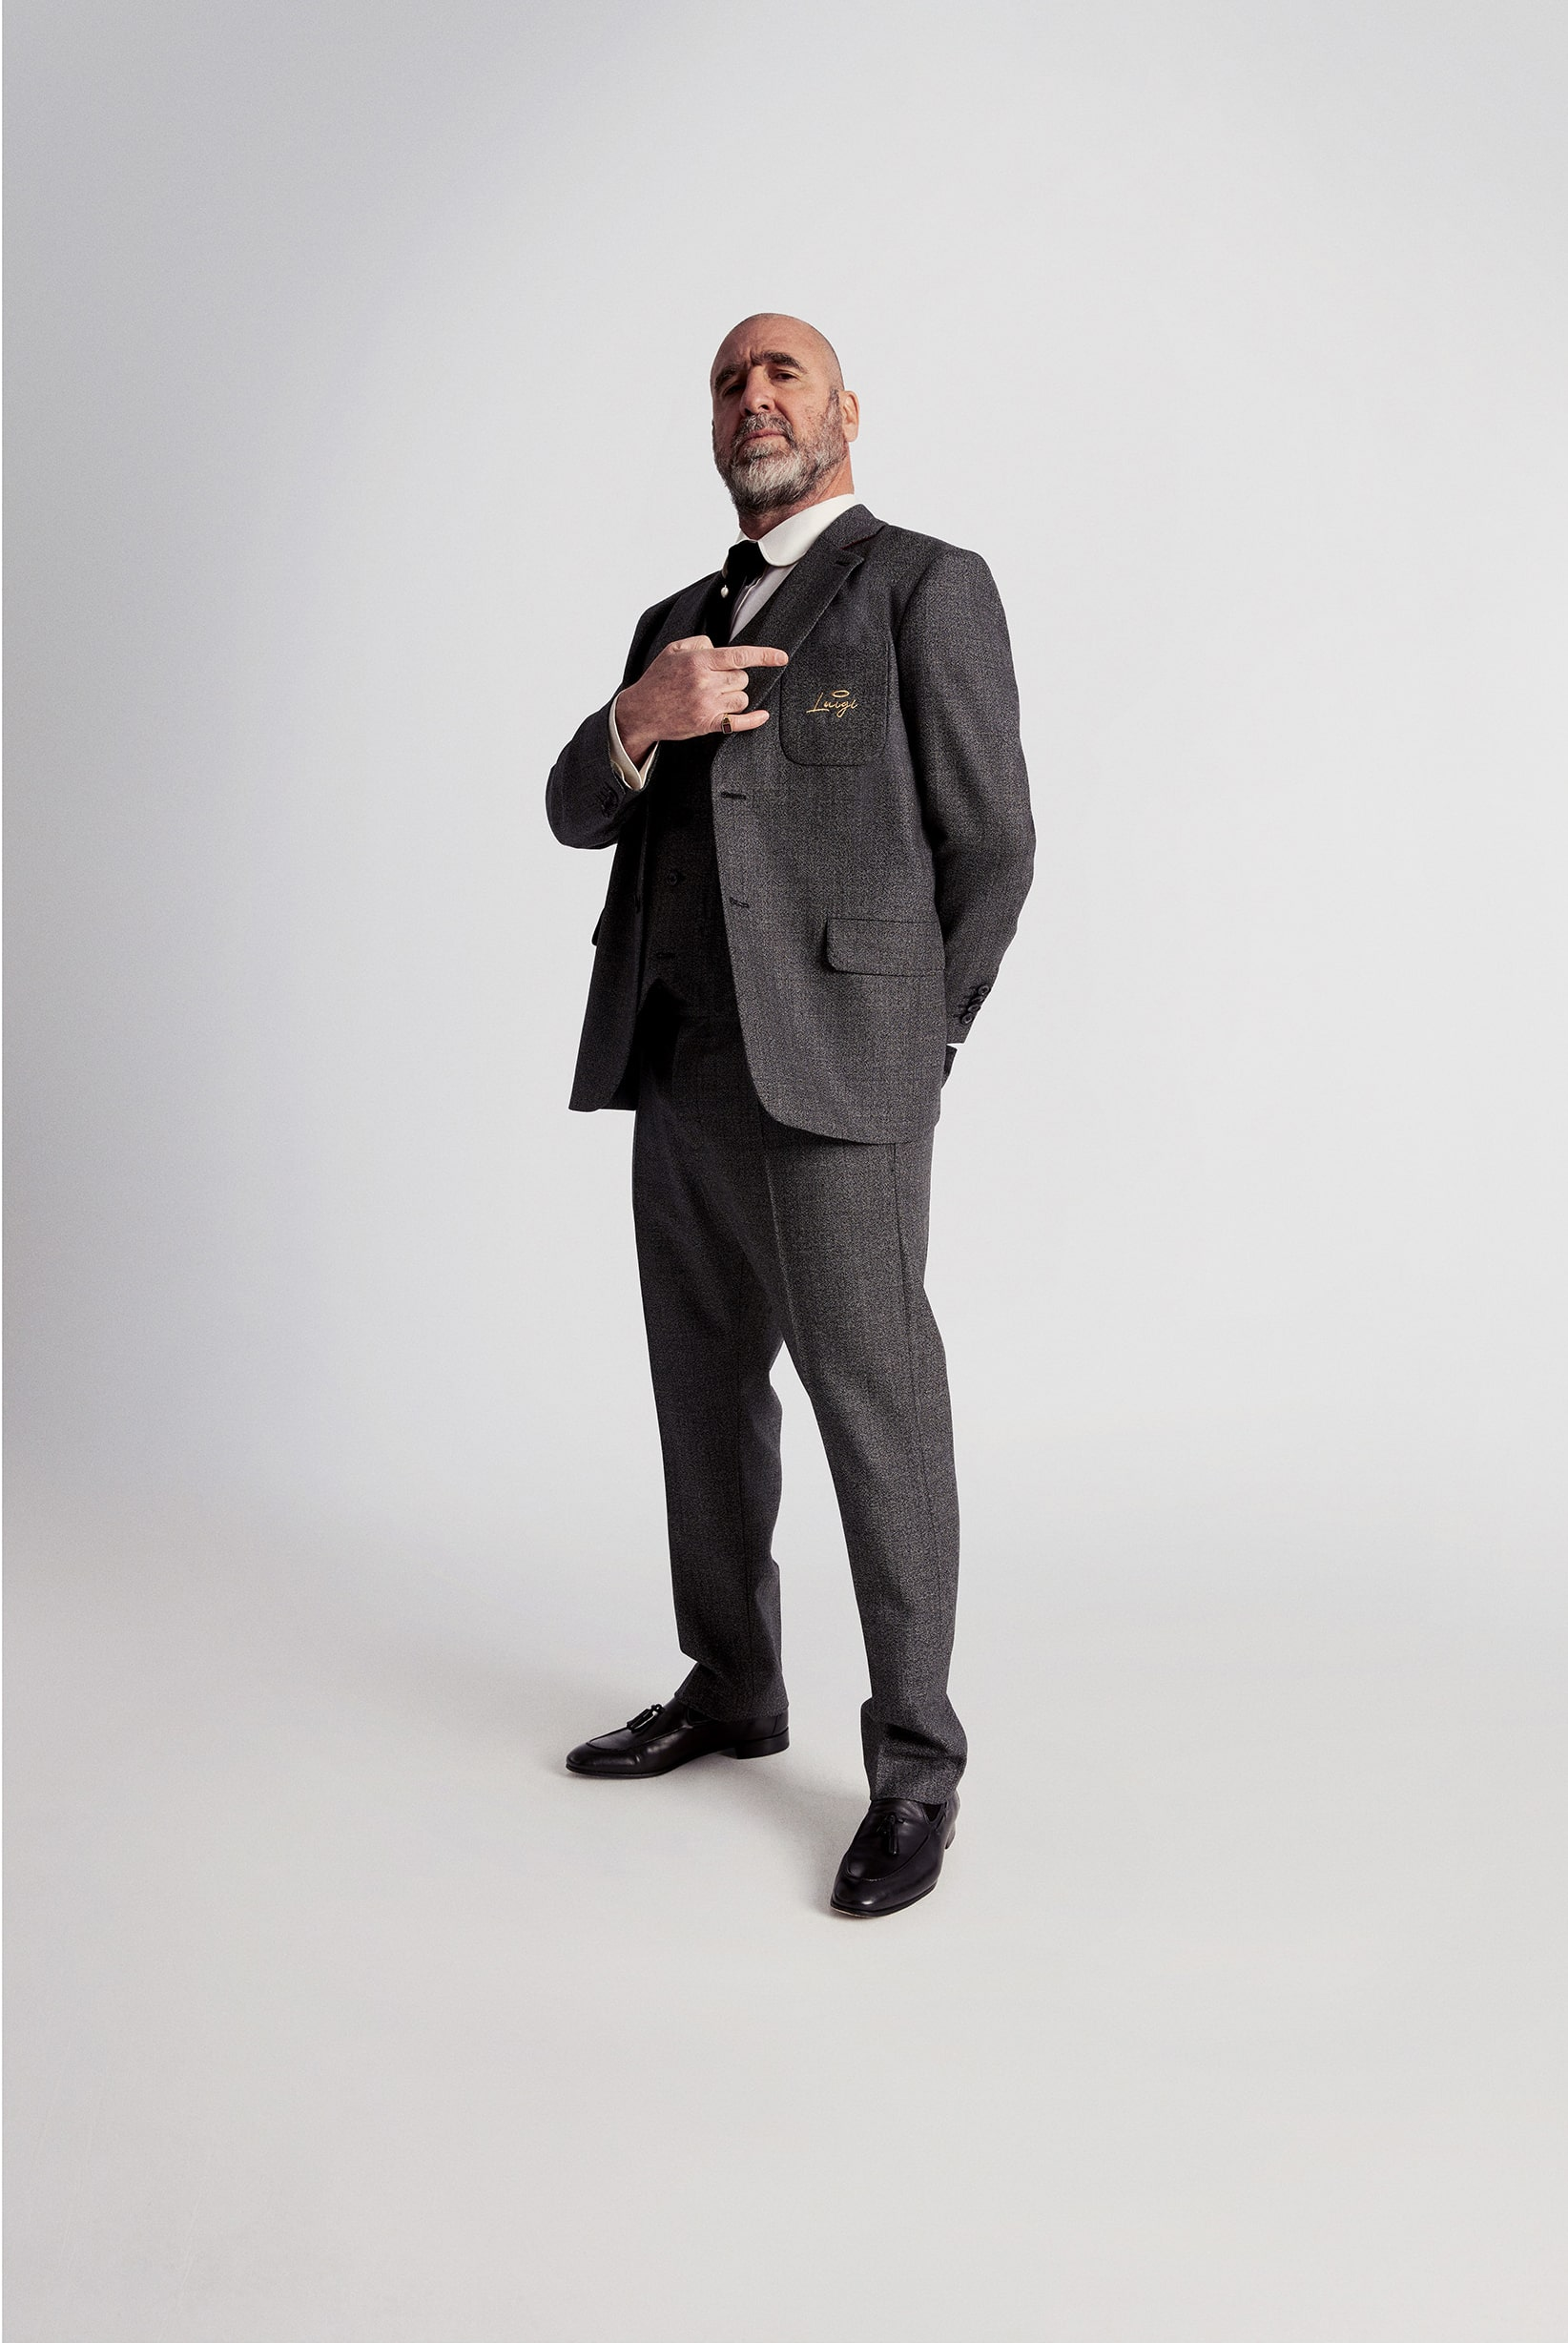 Sports Direct_TVC_Just A Game_Eric Cantona 2-min